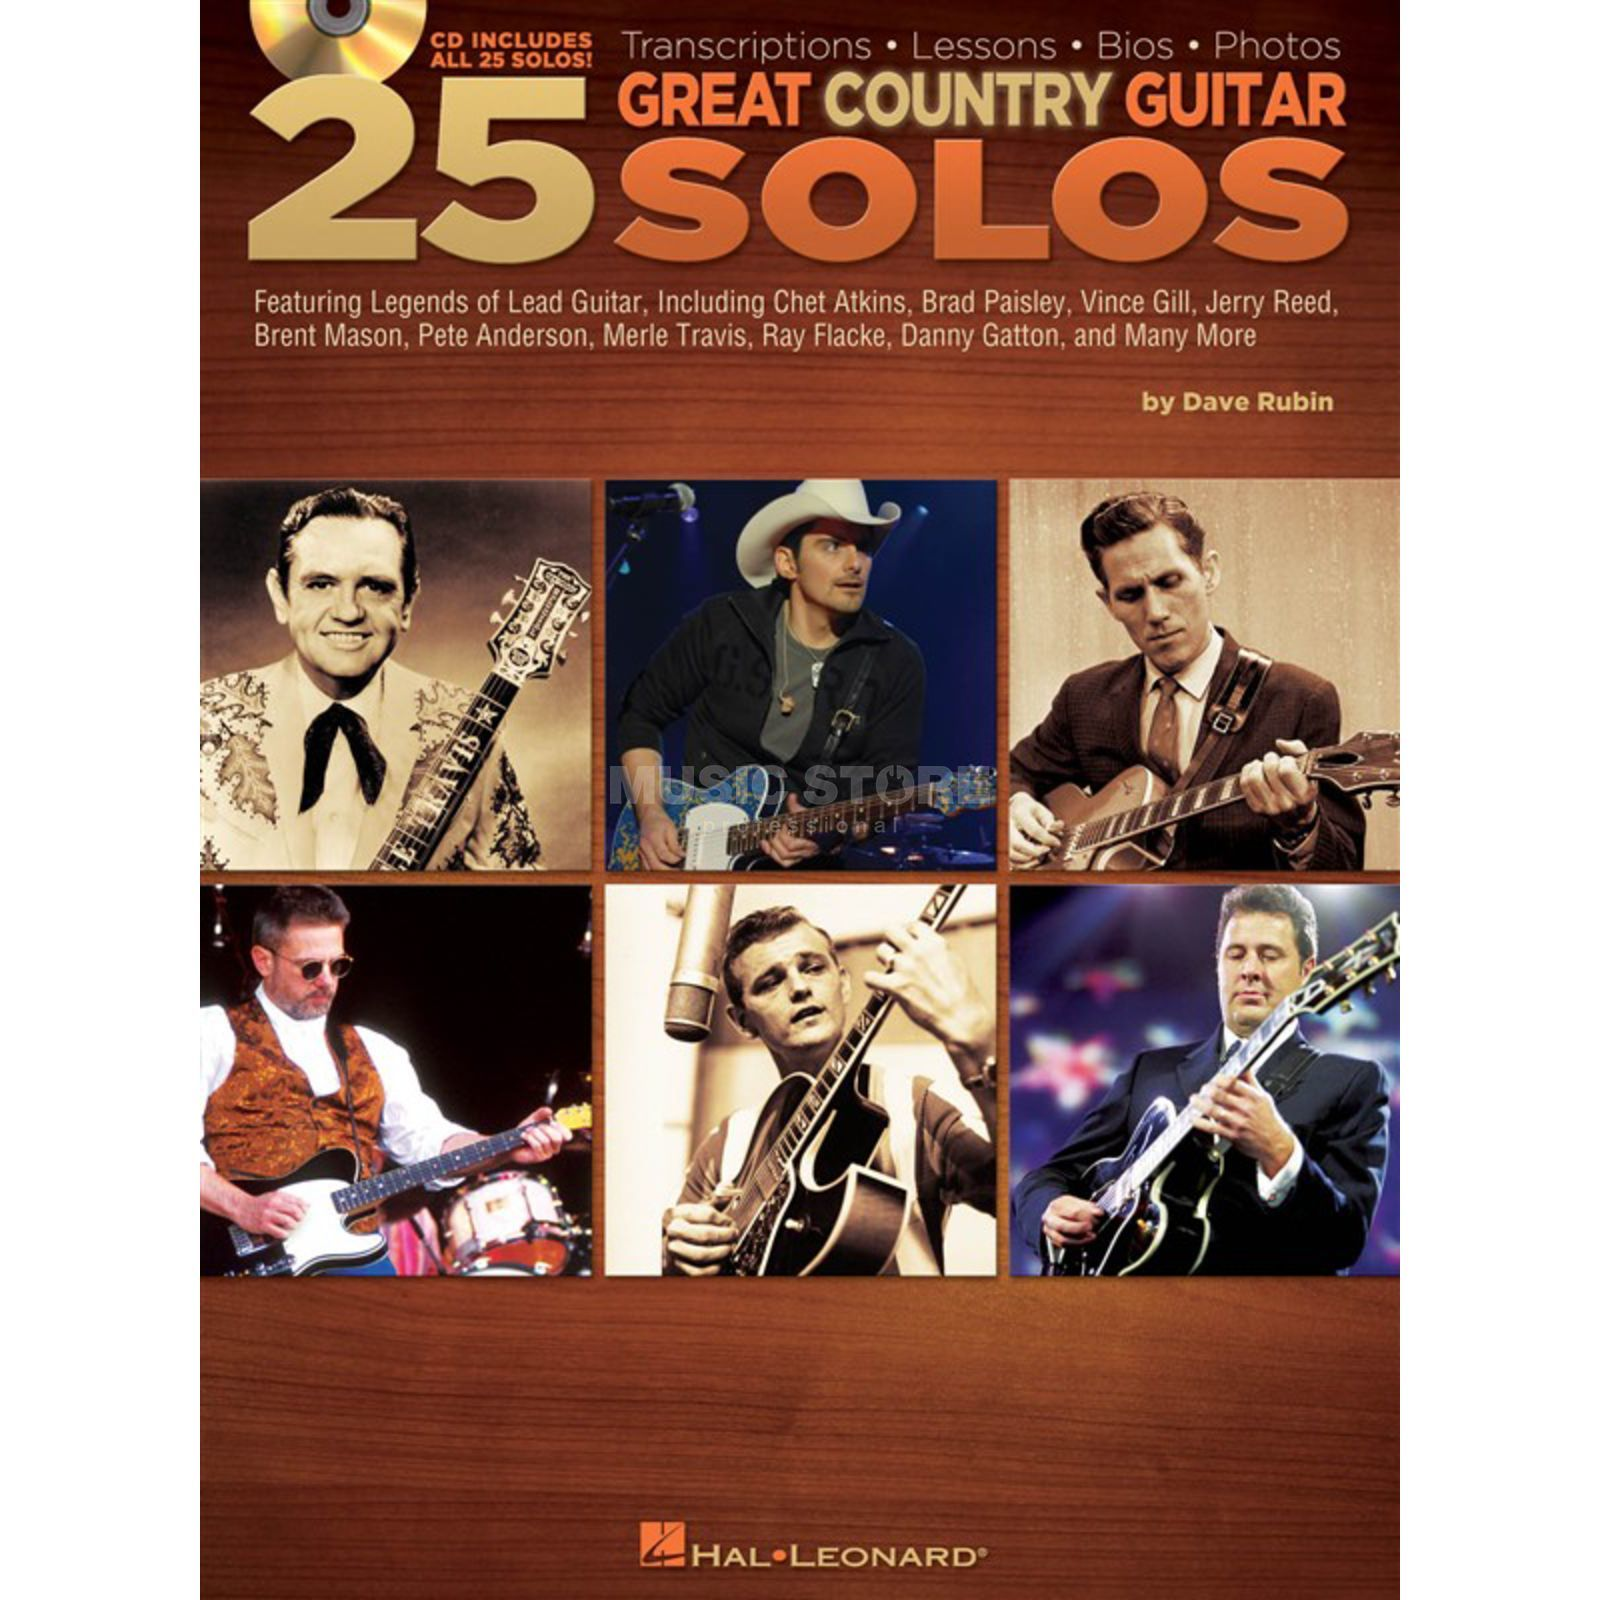 Hal Leonard Dave Rubin: 25 Great Country Guitar Solos Produktbild